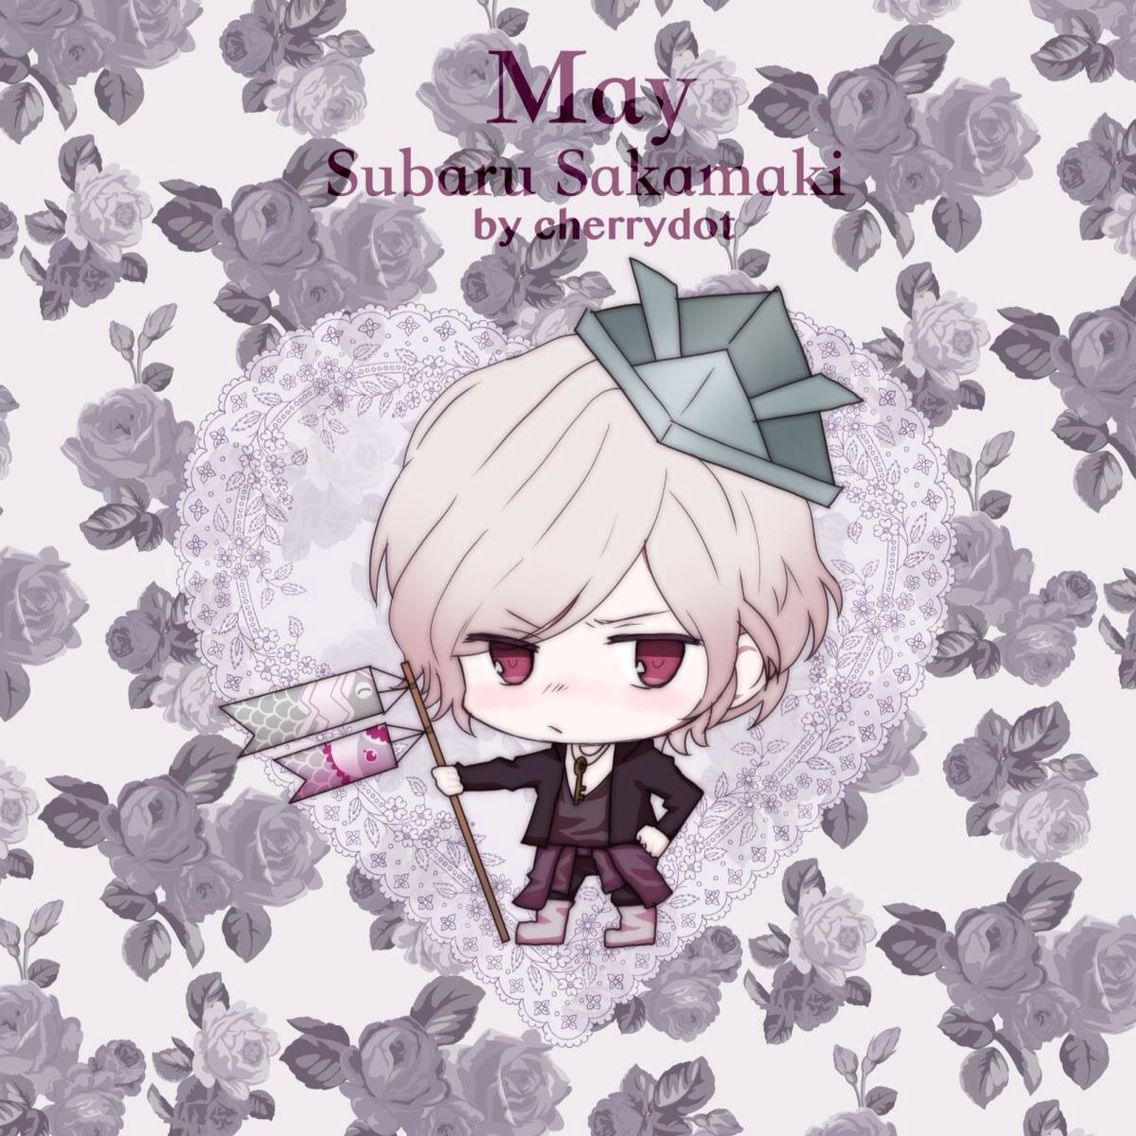 May Subaru Sakamaki